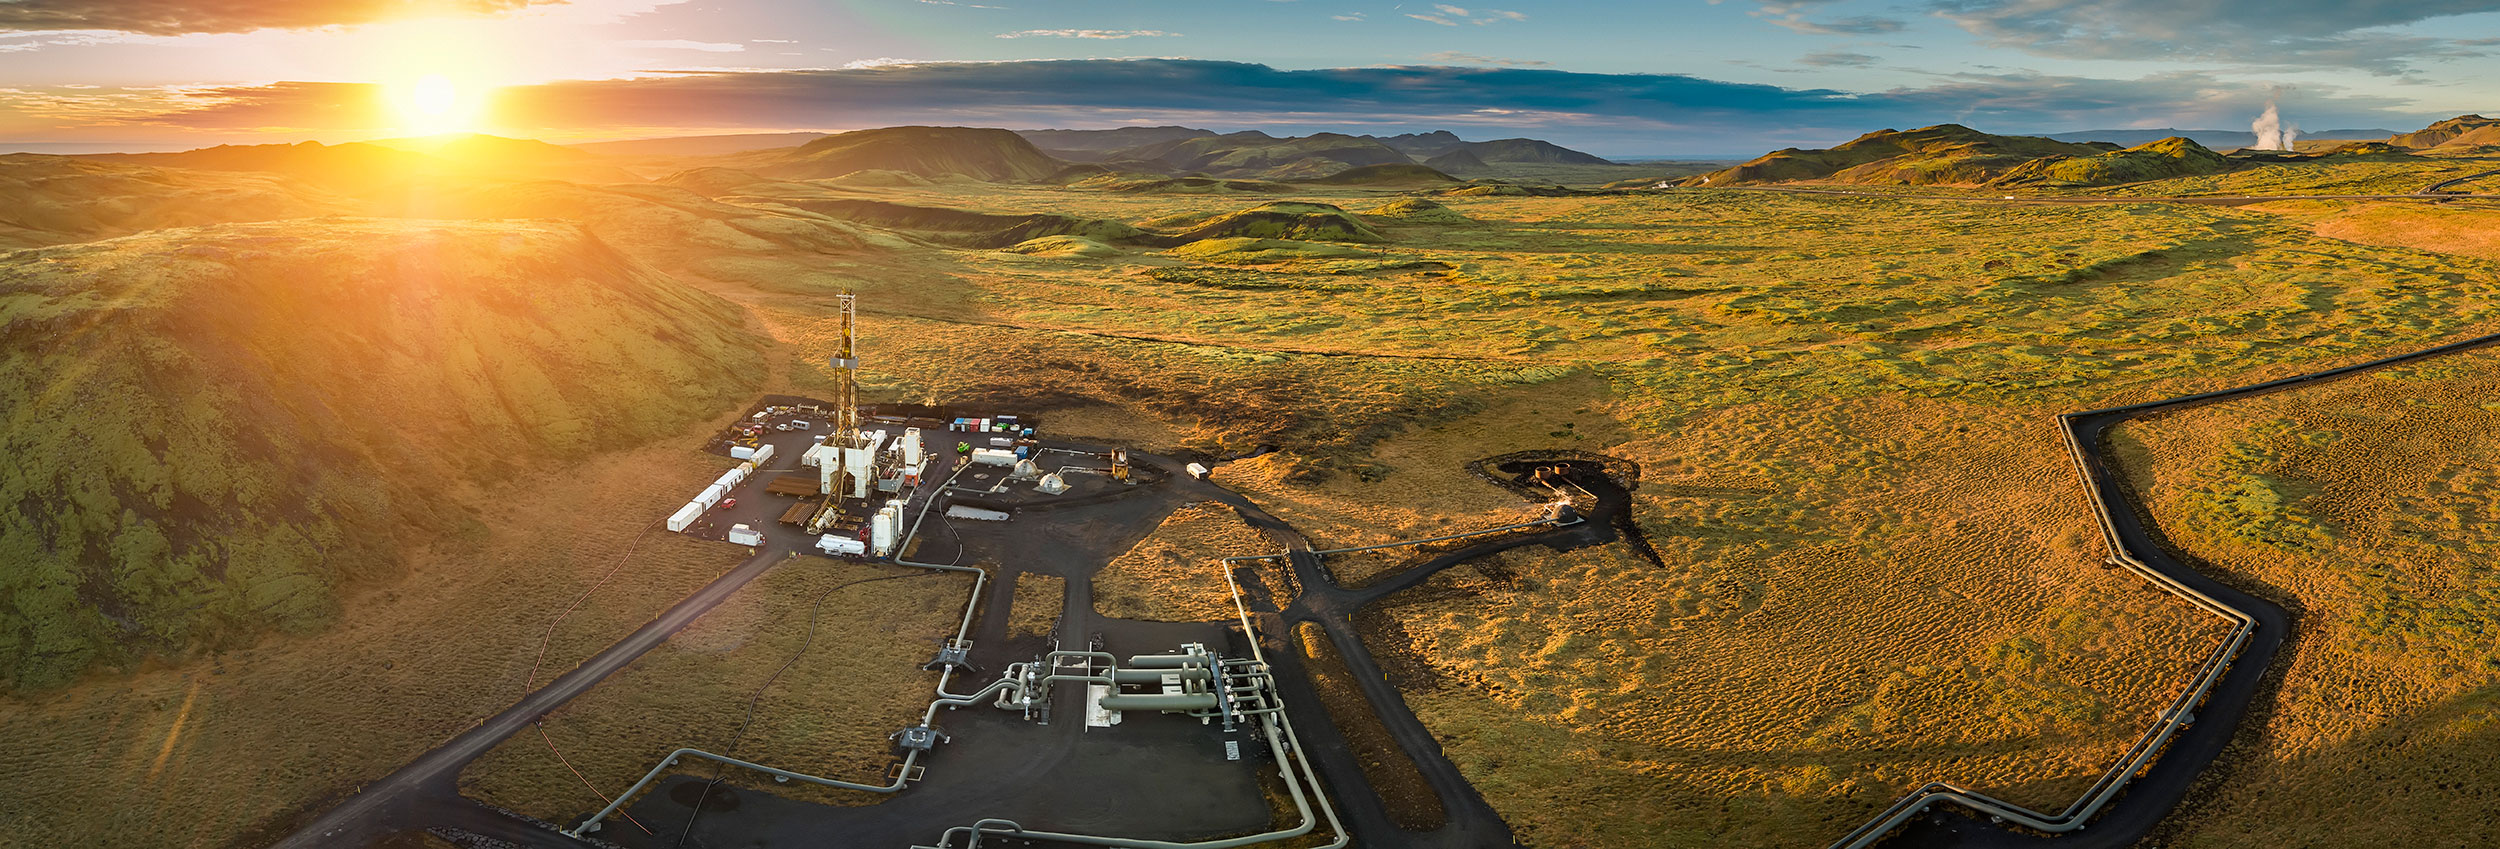 Iceland Drilling starts new geothermal drilling in Hellisheiði, Iceland